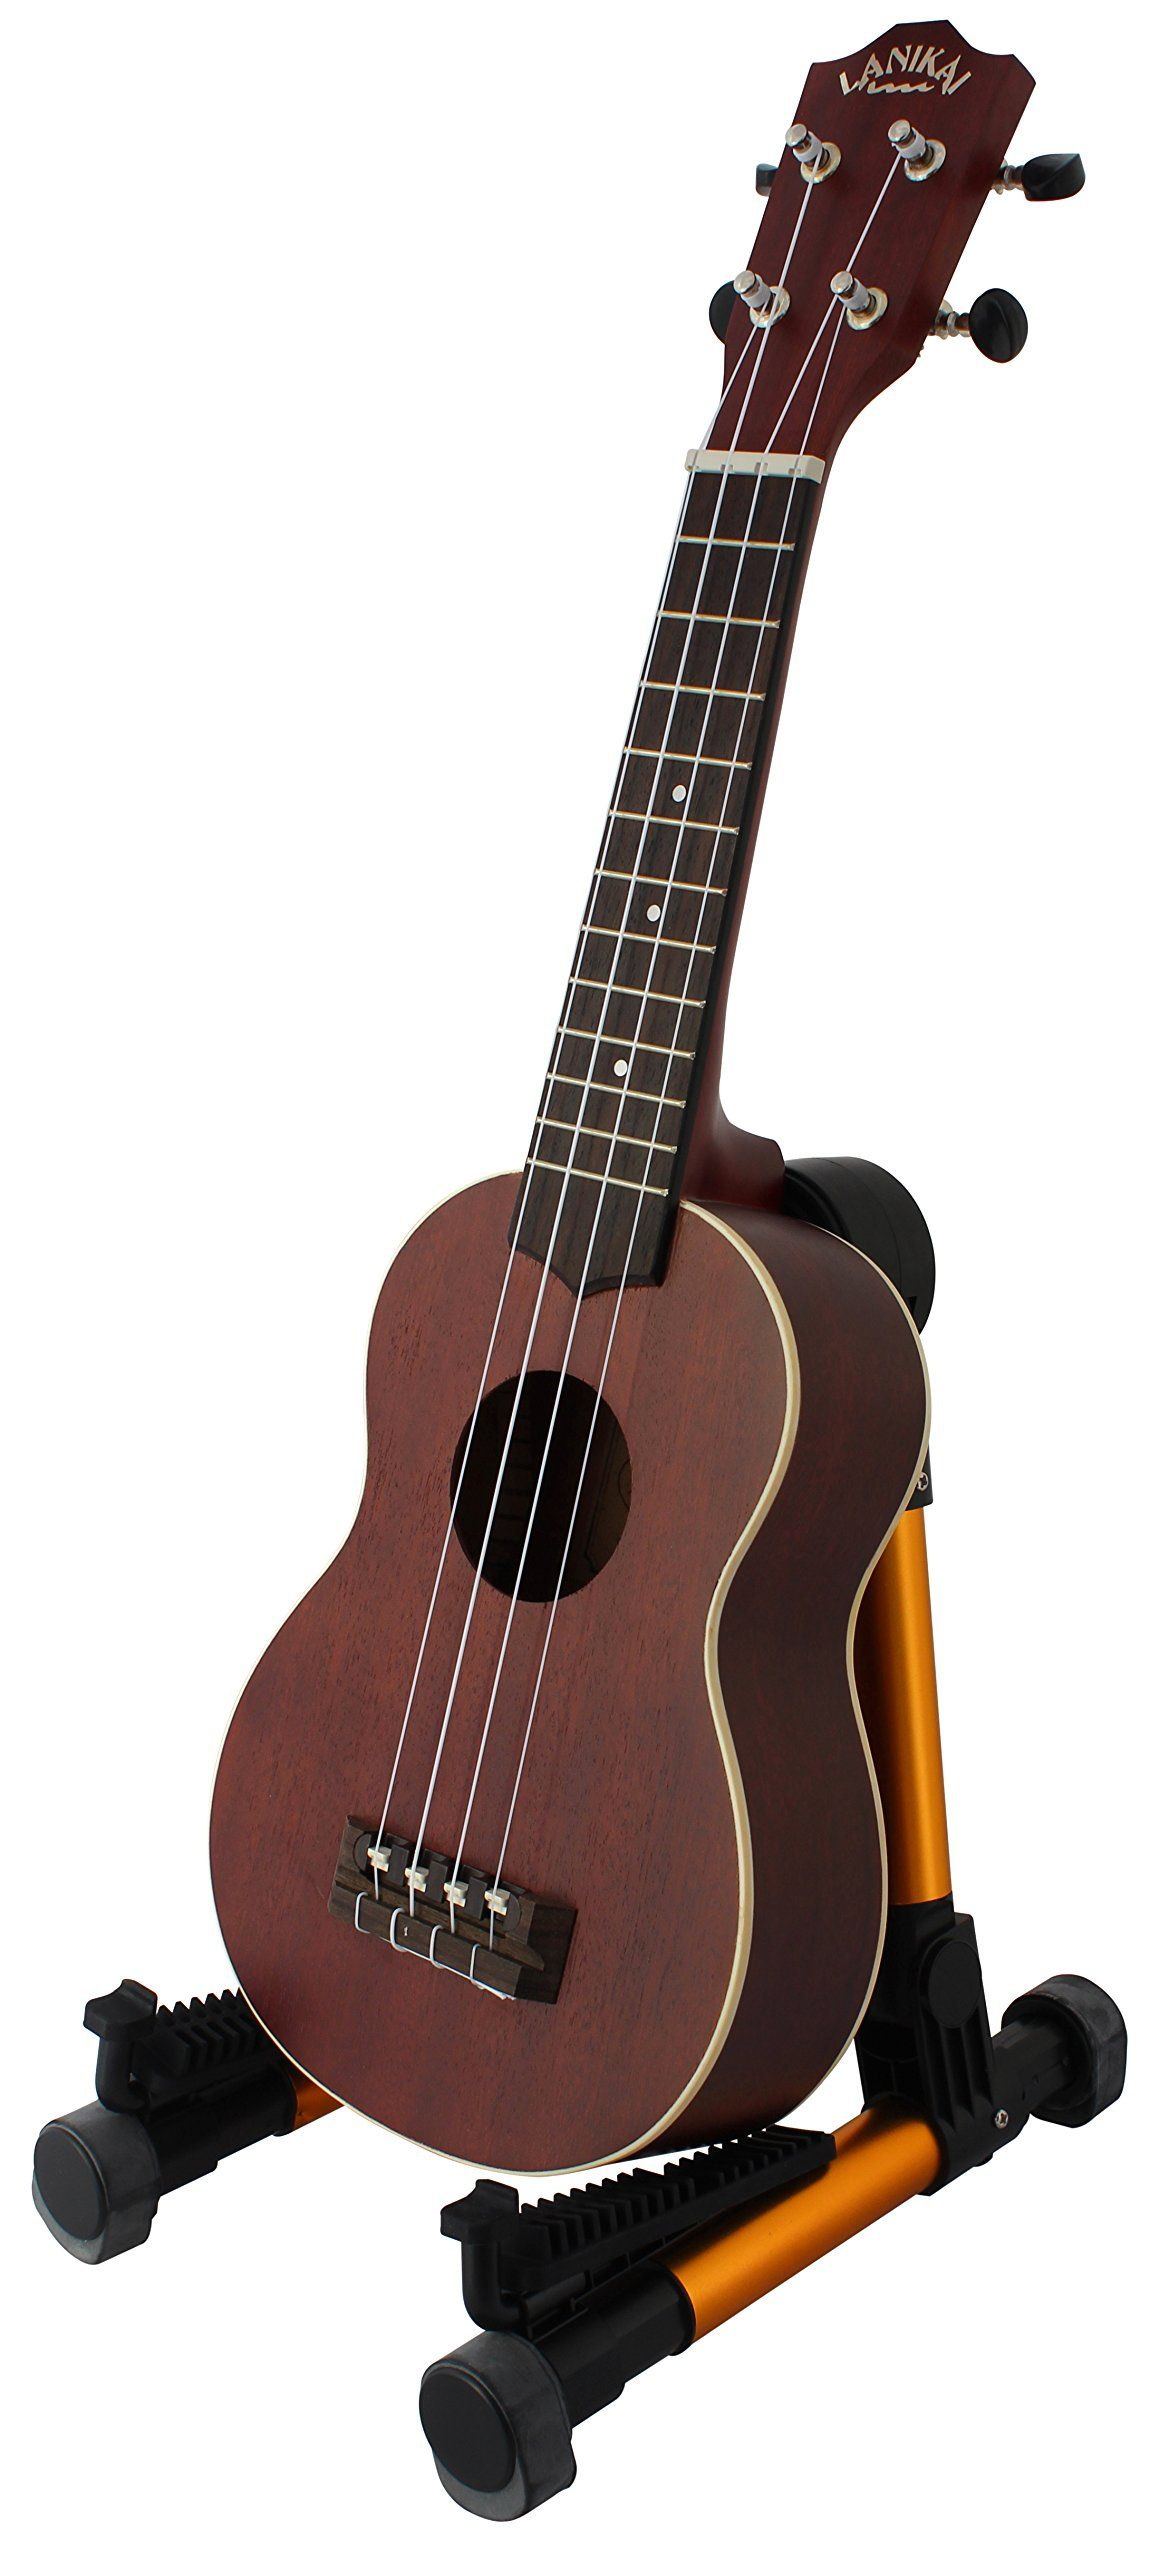 wiring diagram yamaha electric guitar 3 way light switch multiple lights banjo great installation of ymc stand for acoustic classical guitars and violin rh pinterest com bass